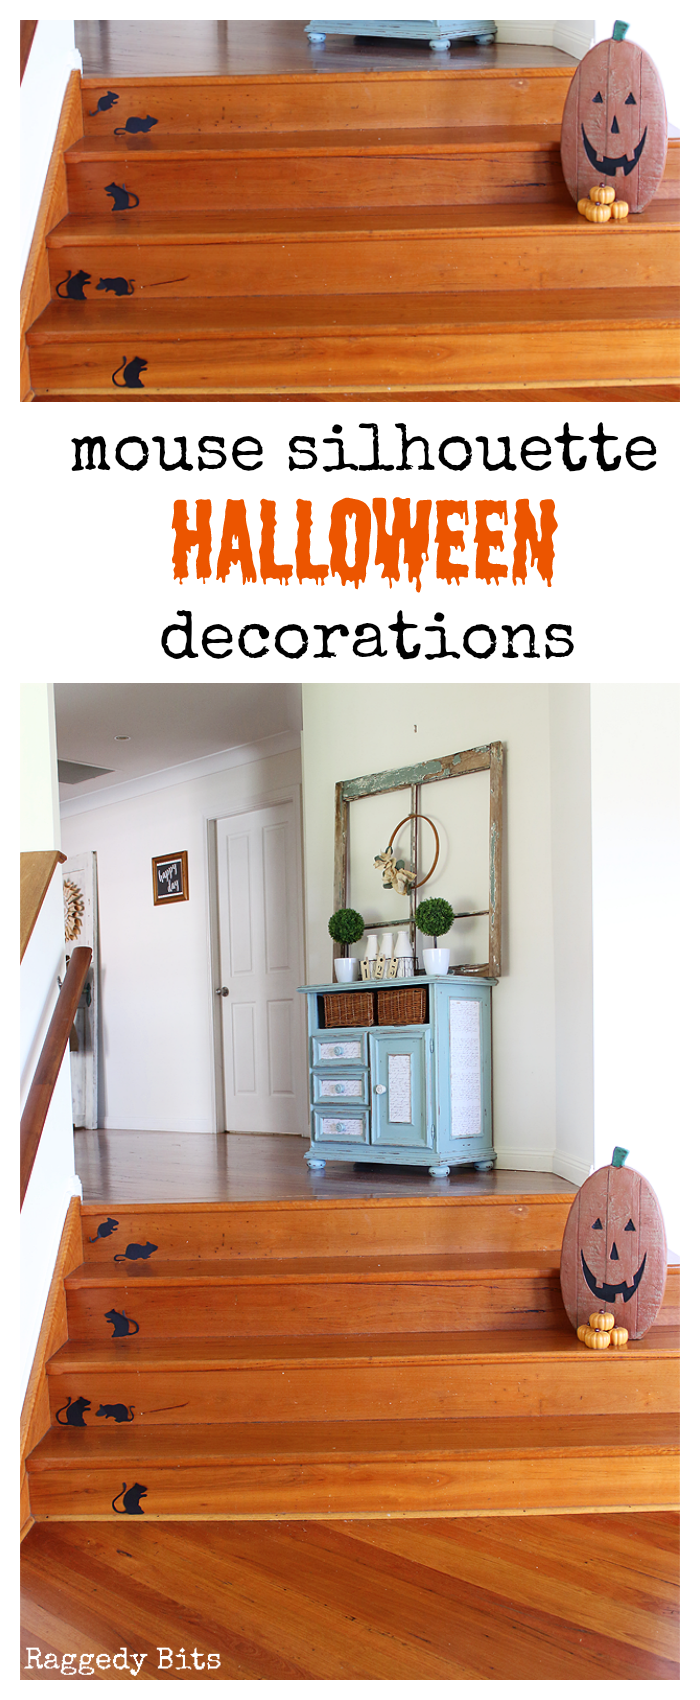 DAY 3 Halloween Mouse Silhouette Decorations | Make 5 fun projects between now and Halloween | www.raggedy-bits.com #halloween #halloweendecorations#decoratingideas #easy #mouse #silhouette